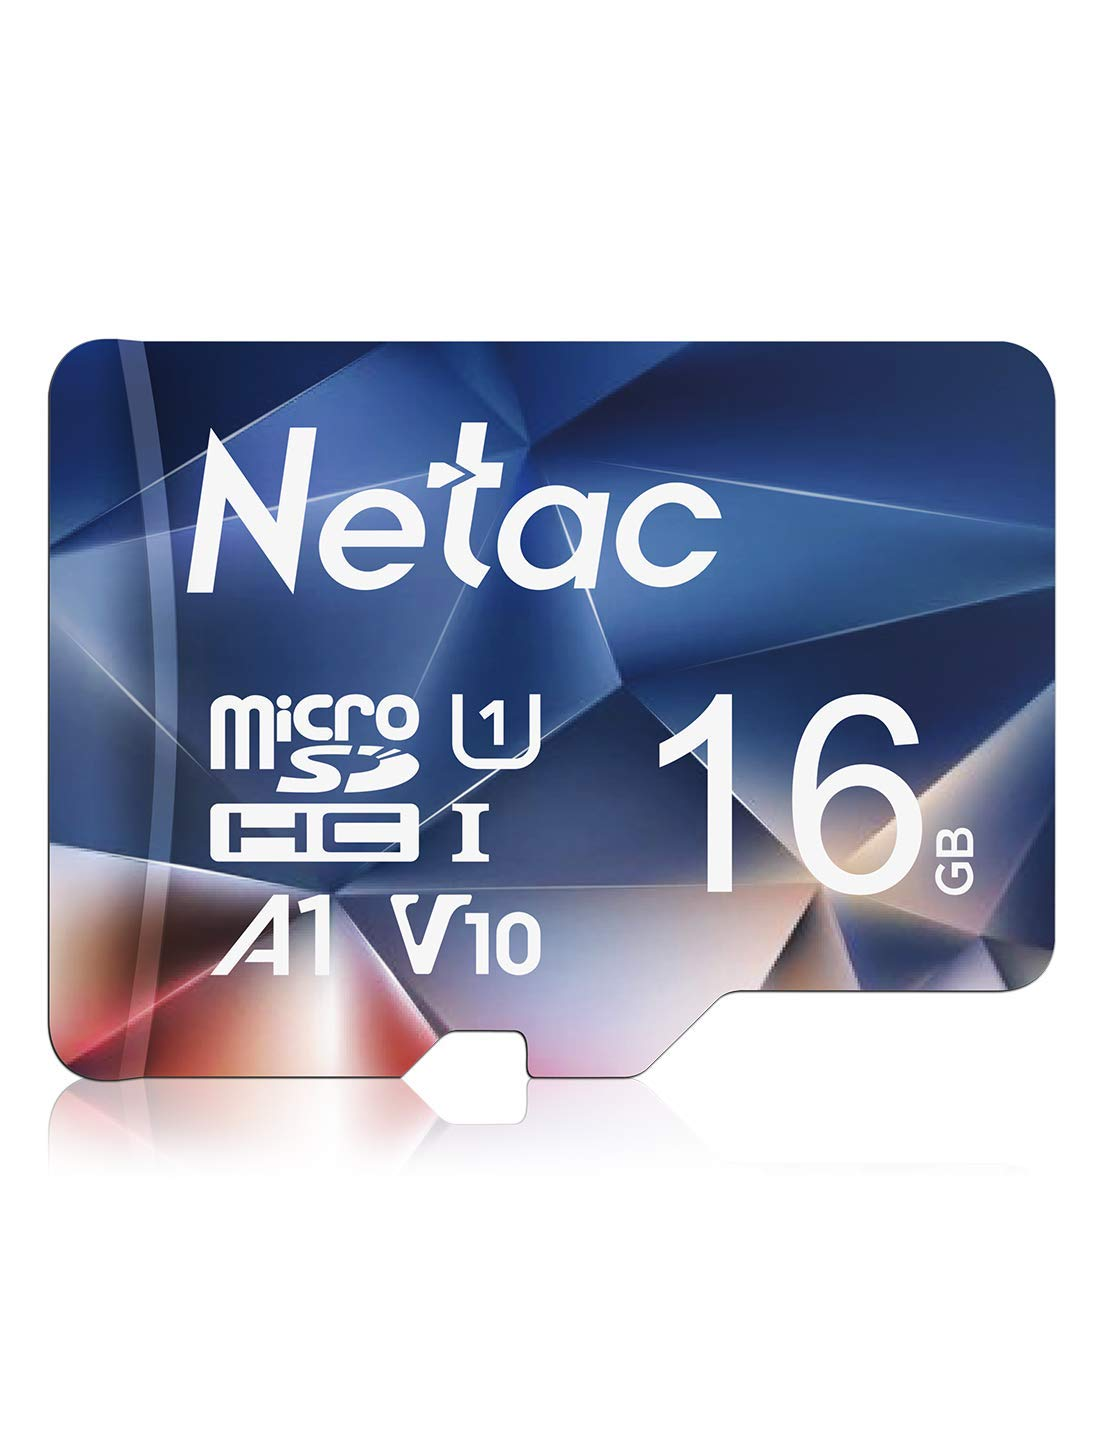 Great working SD card especially for the price